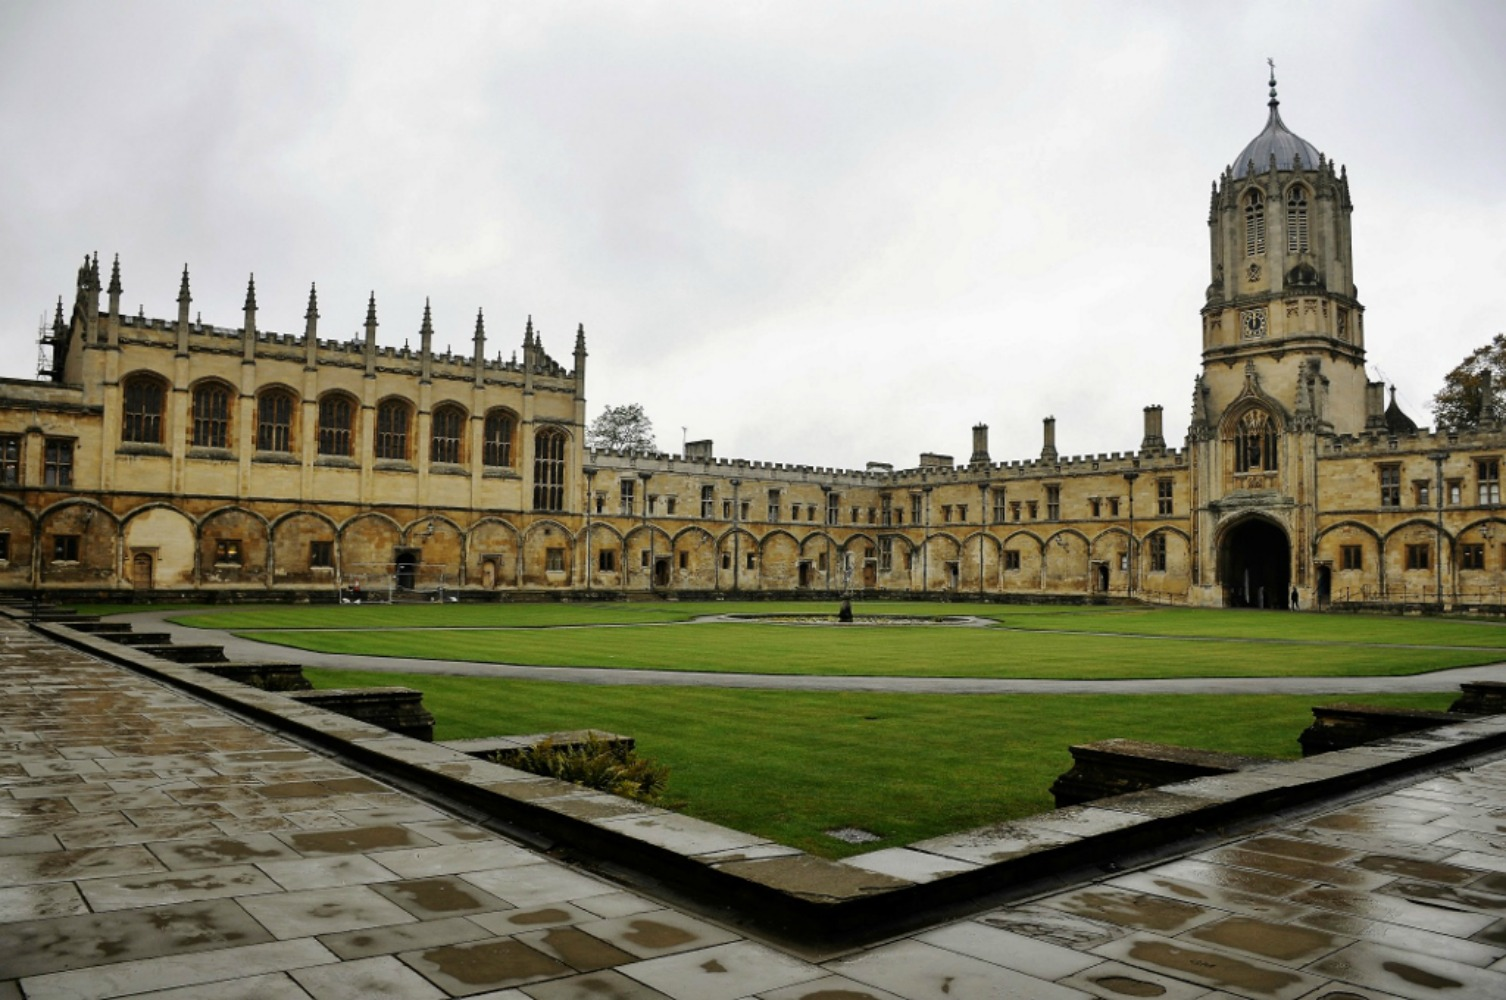 The vast grounds of Oxford. Photo courtesy Ian Smith.